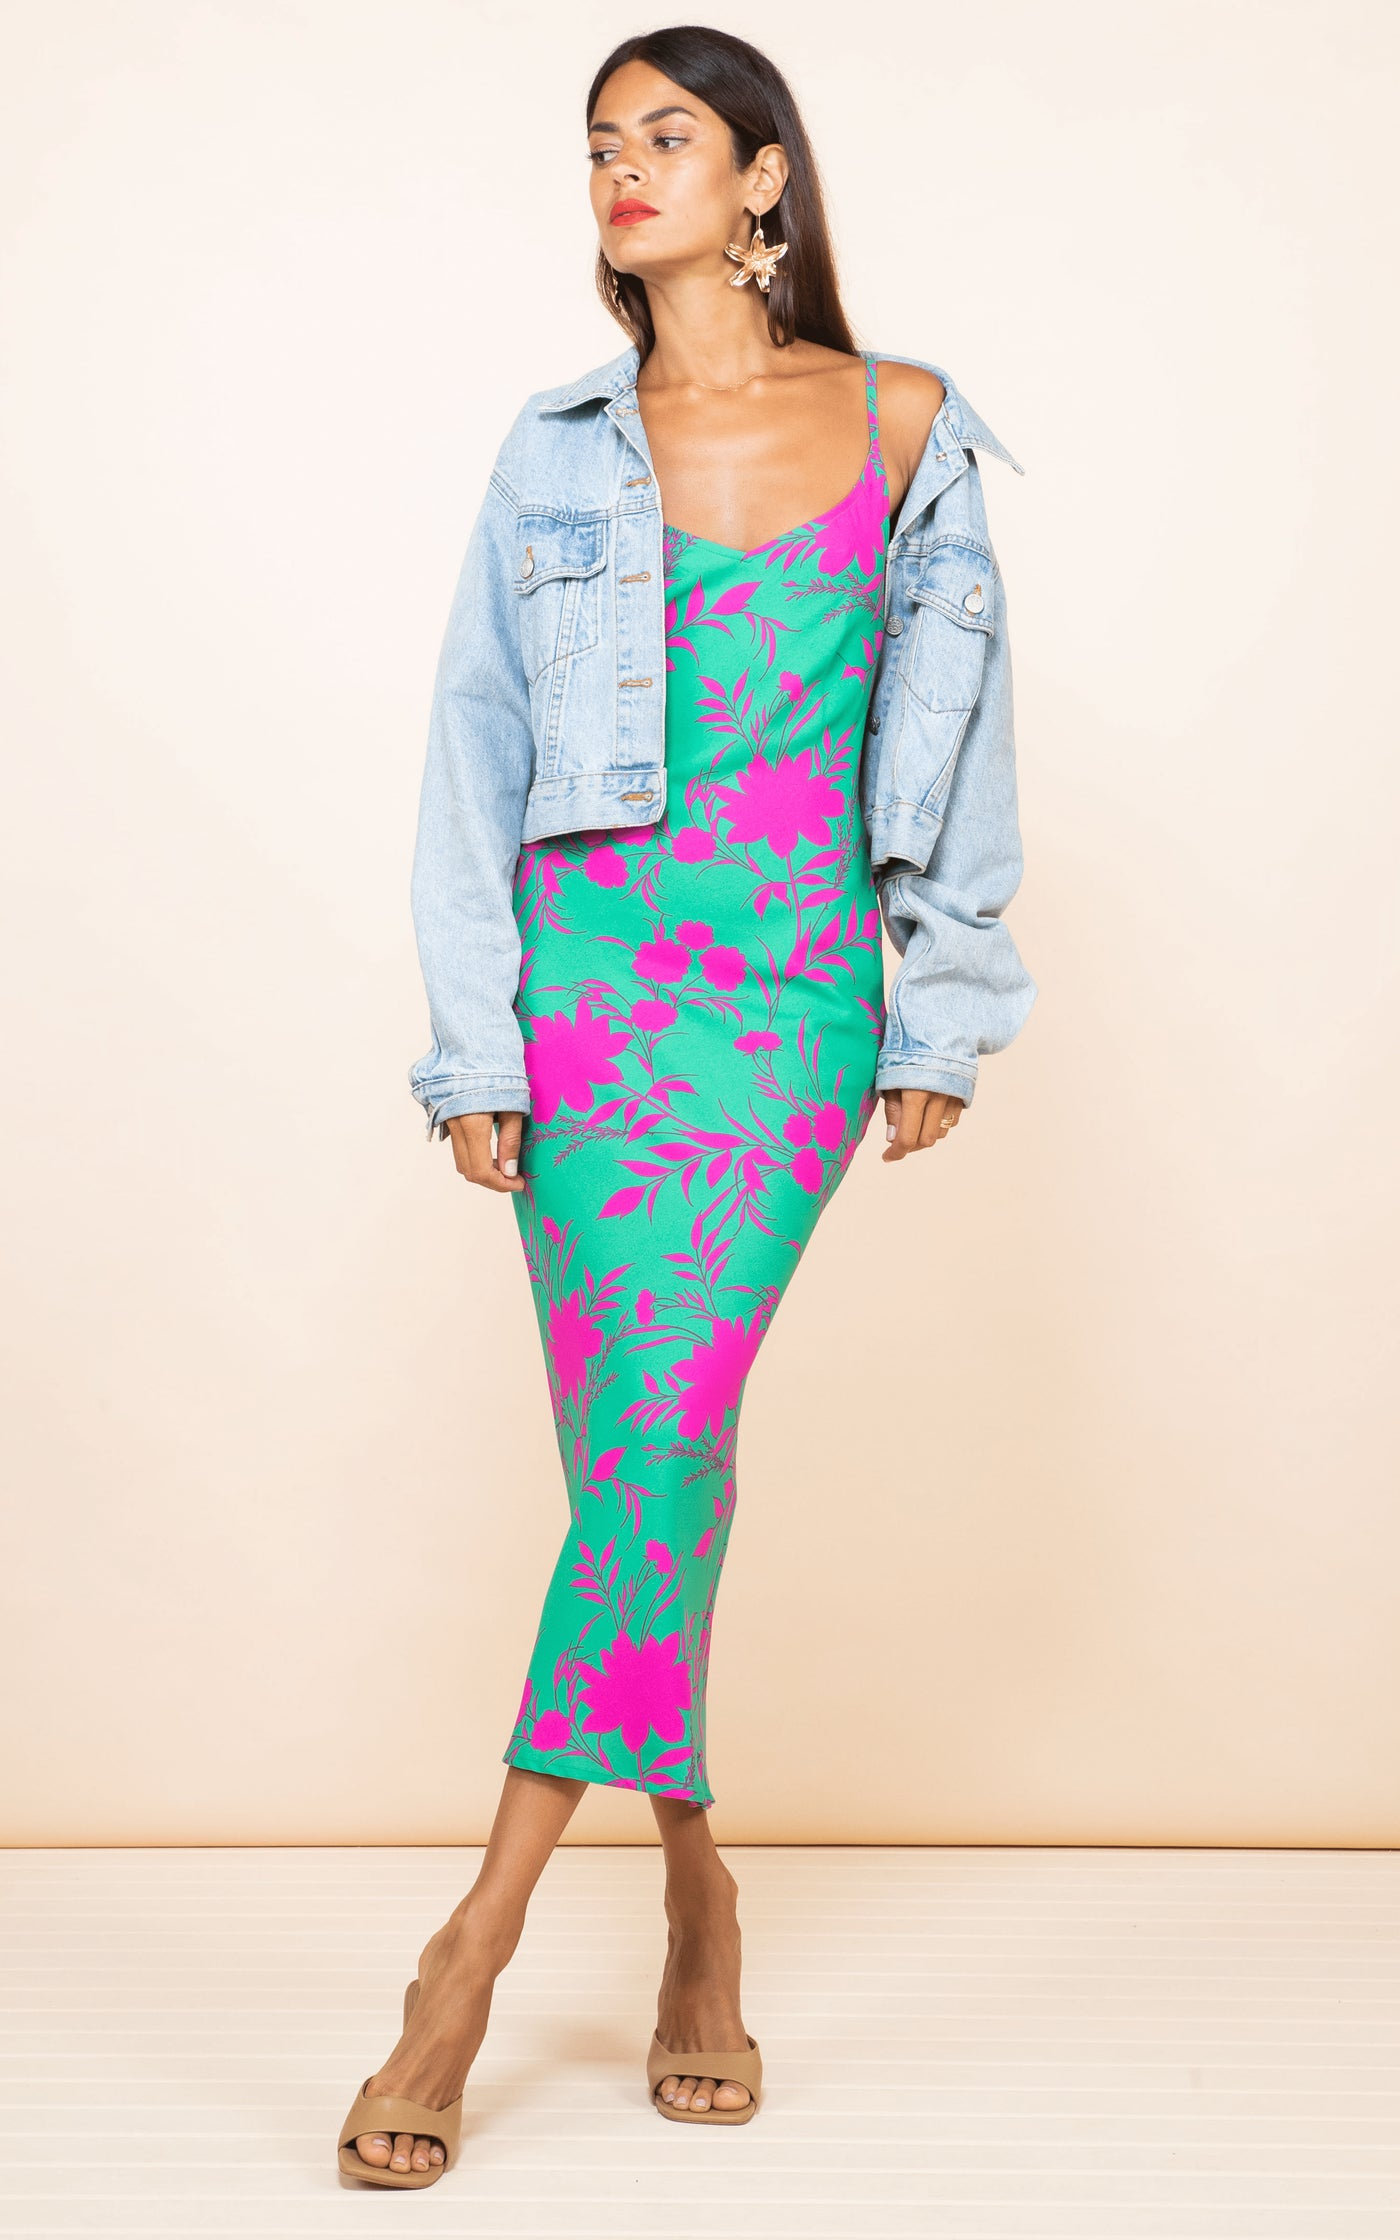 Front-facing model wears Sienna Midaxi Dress in Silhouette Pink on Green by Dancing Leopard styled with denim jacket